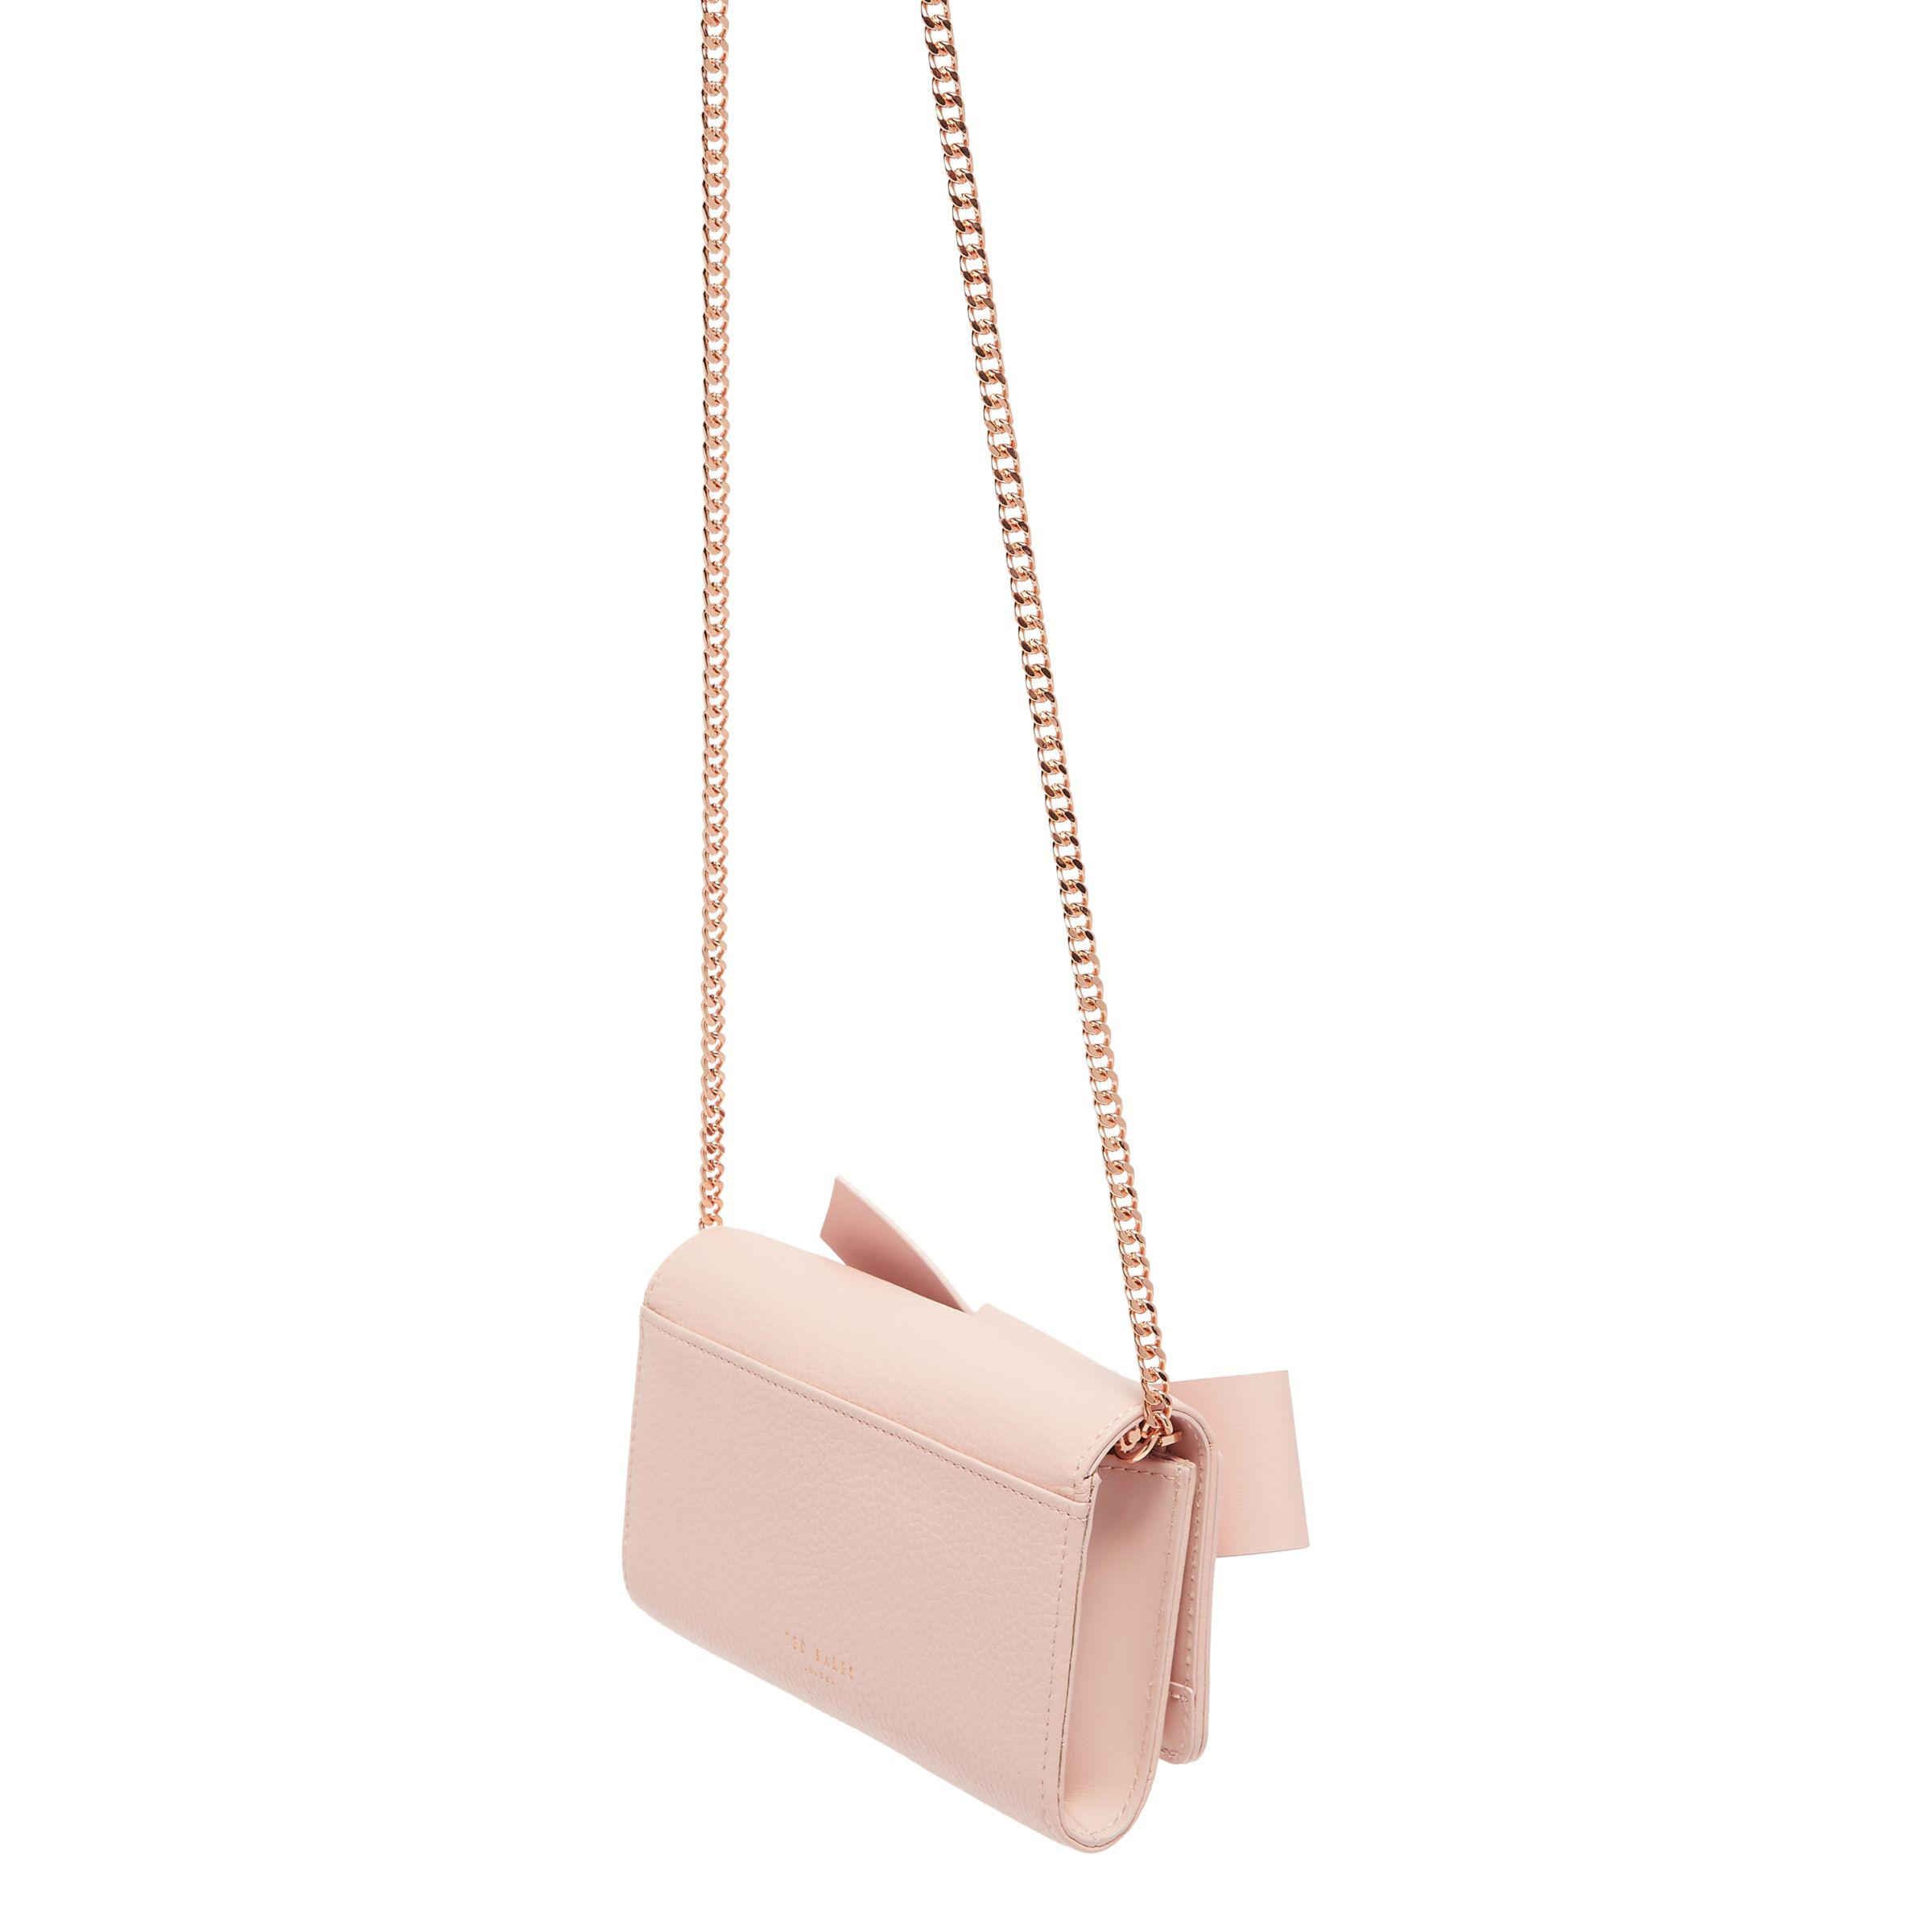 31e56e24da707c Ted baker lyle giant knot bow leather evening bag in pink lyst jpg  2400x2400 Lyle baker